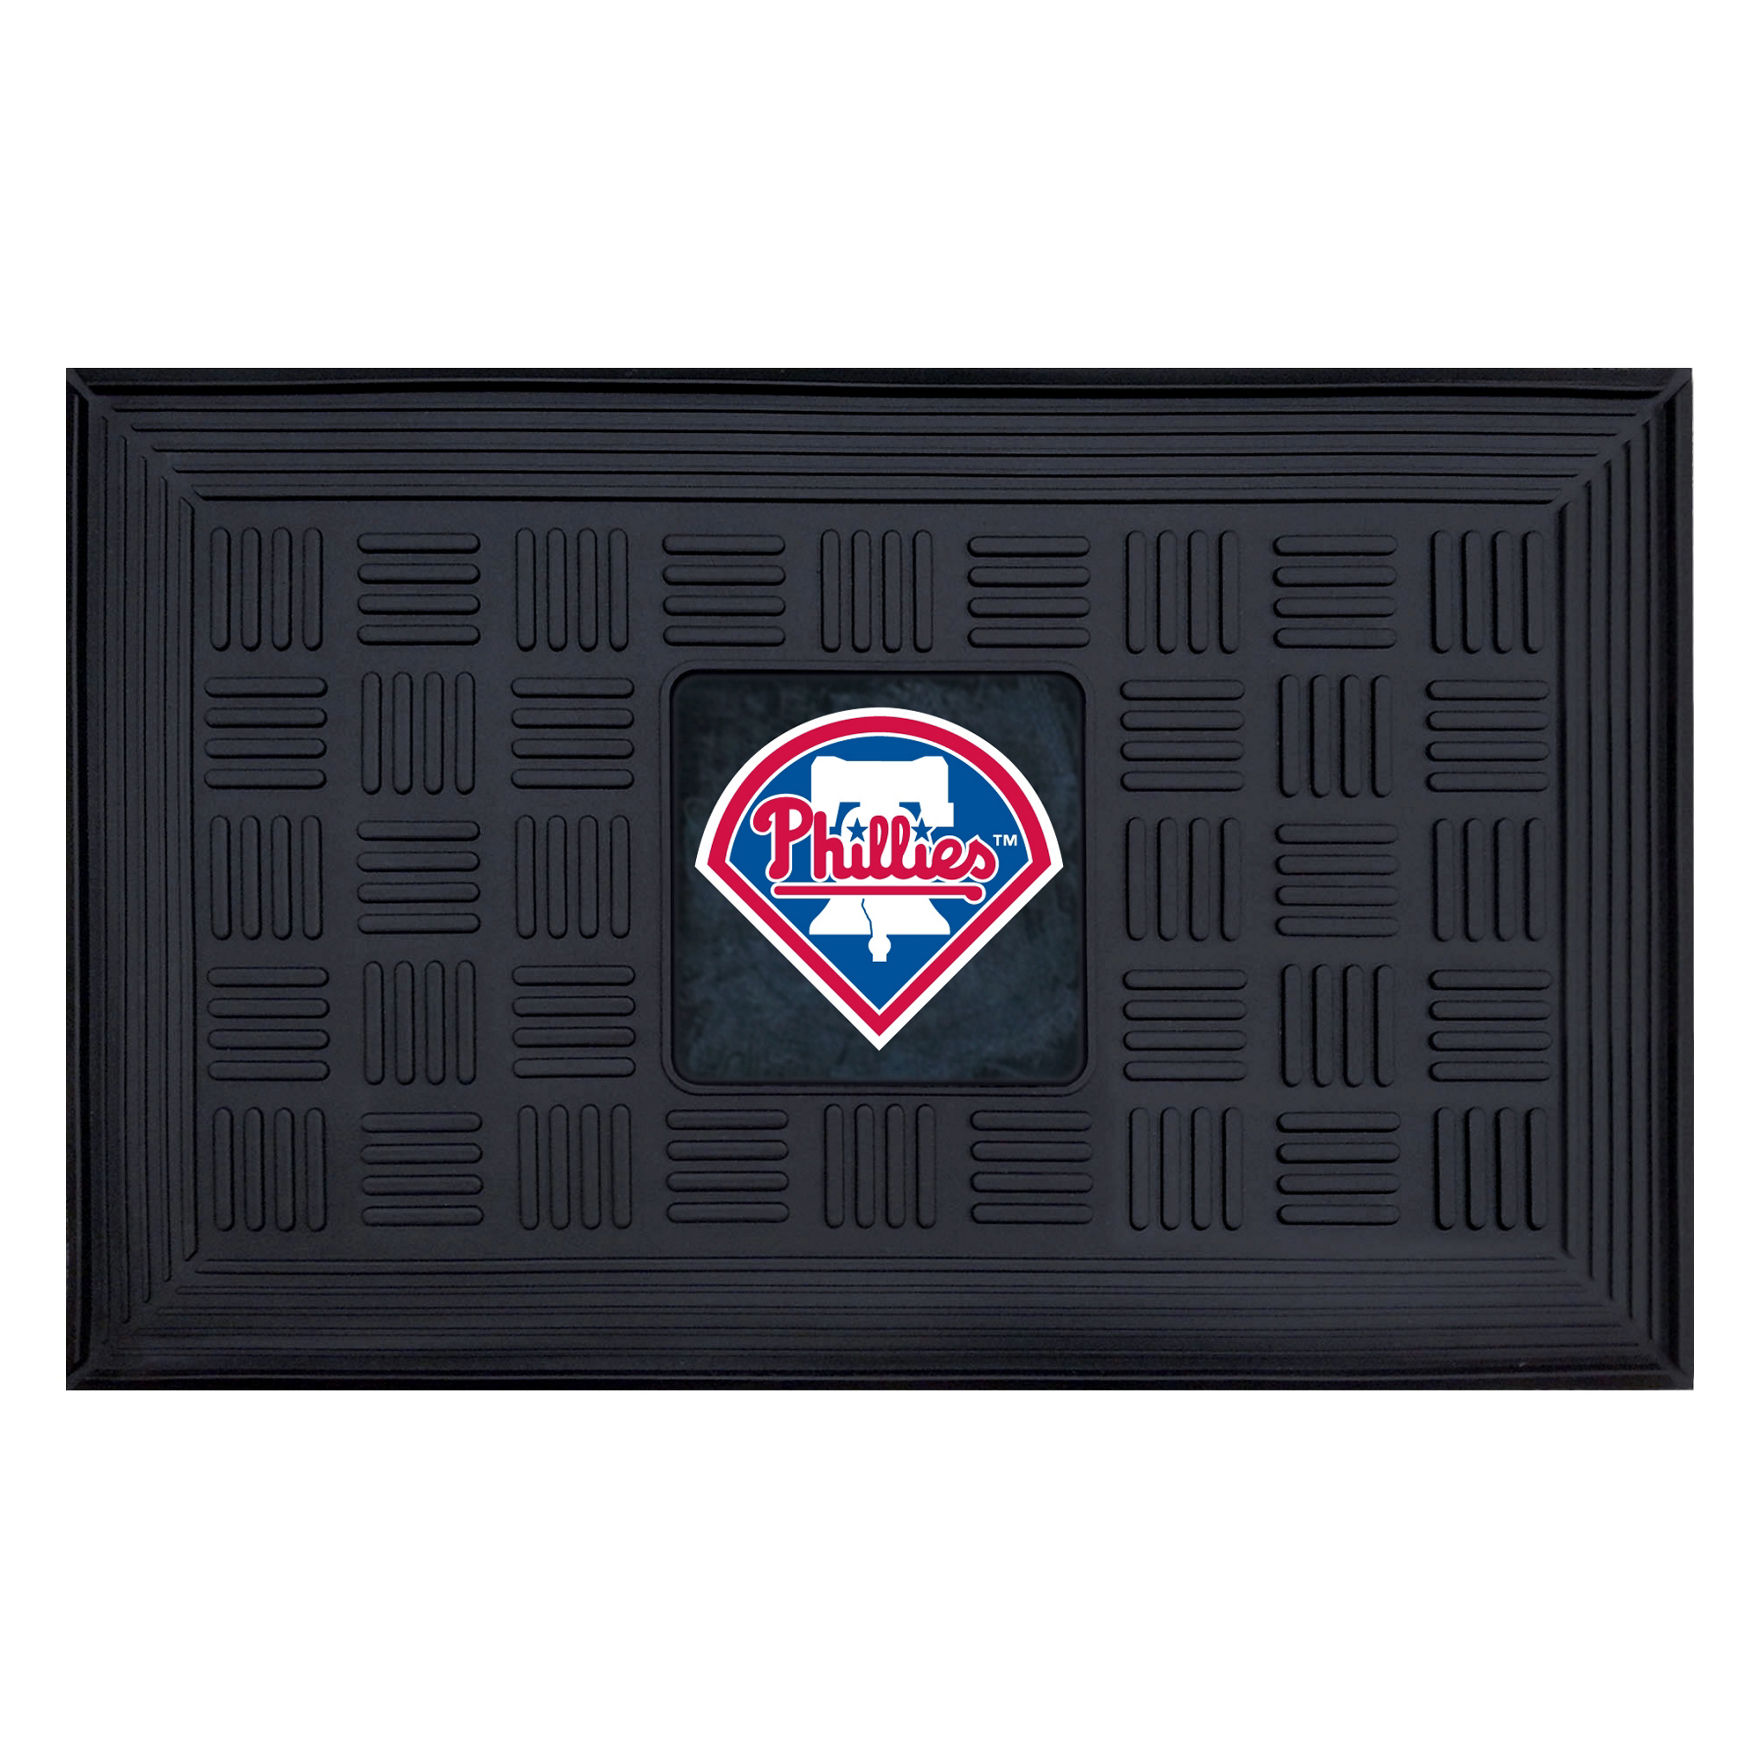 Fanmats Black Outdoor Rugs & Doormats